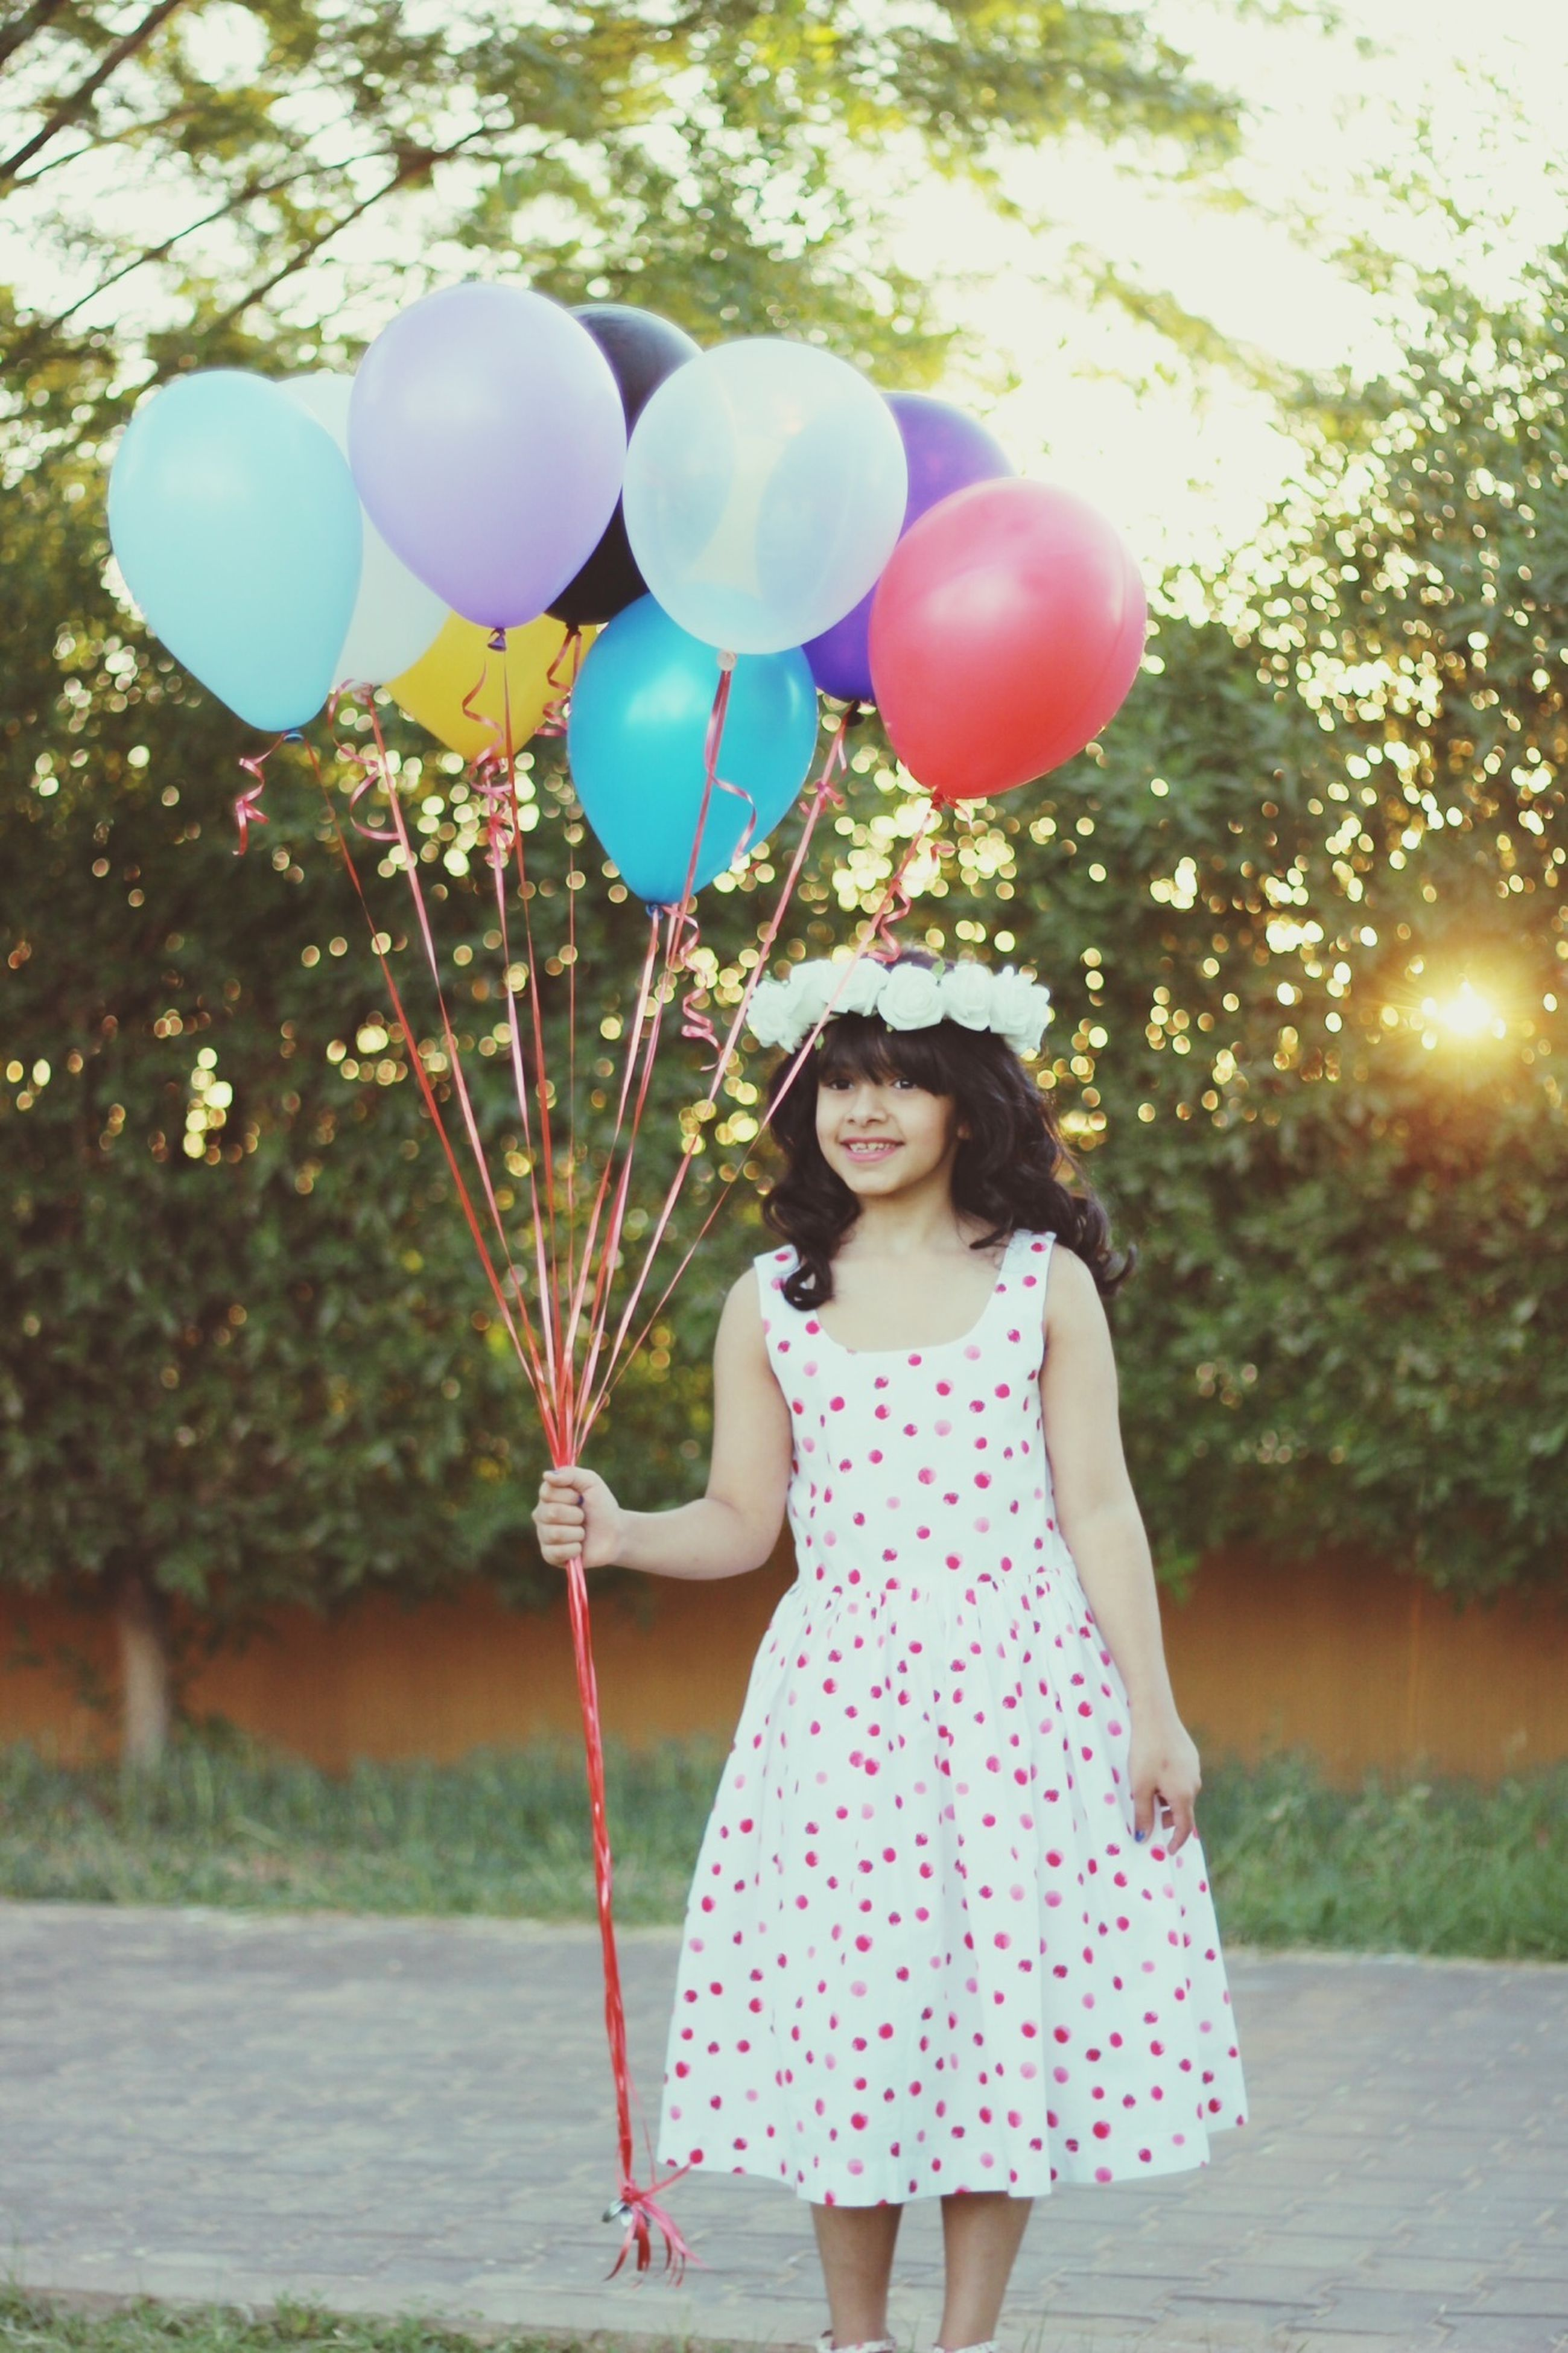 hanging, tree, celebration, decoration, low angle view, branch, lighting equipment, sunlight, outdoors, childhood, close-up, day, growth, balloon, swing, lens flare, focus on foreground, tradition, nature, christmas